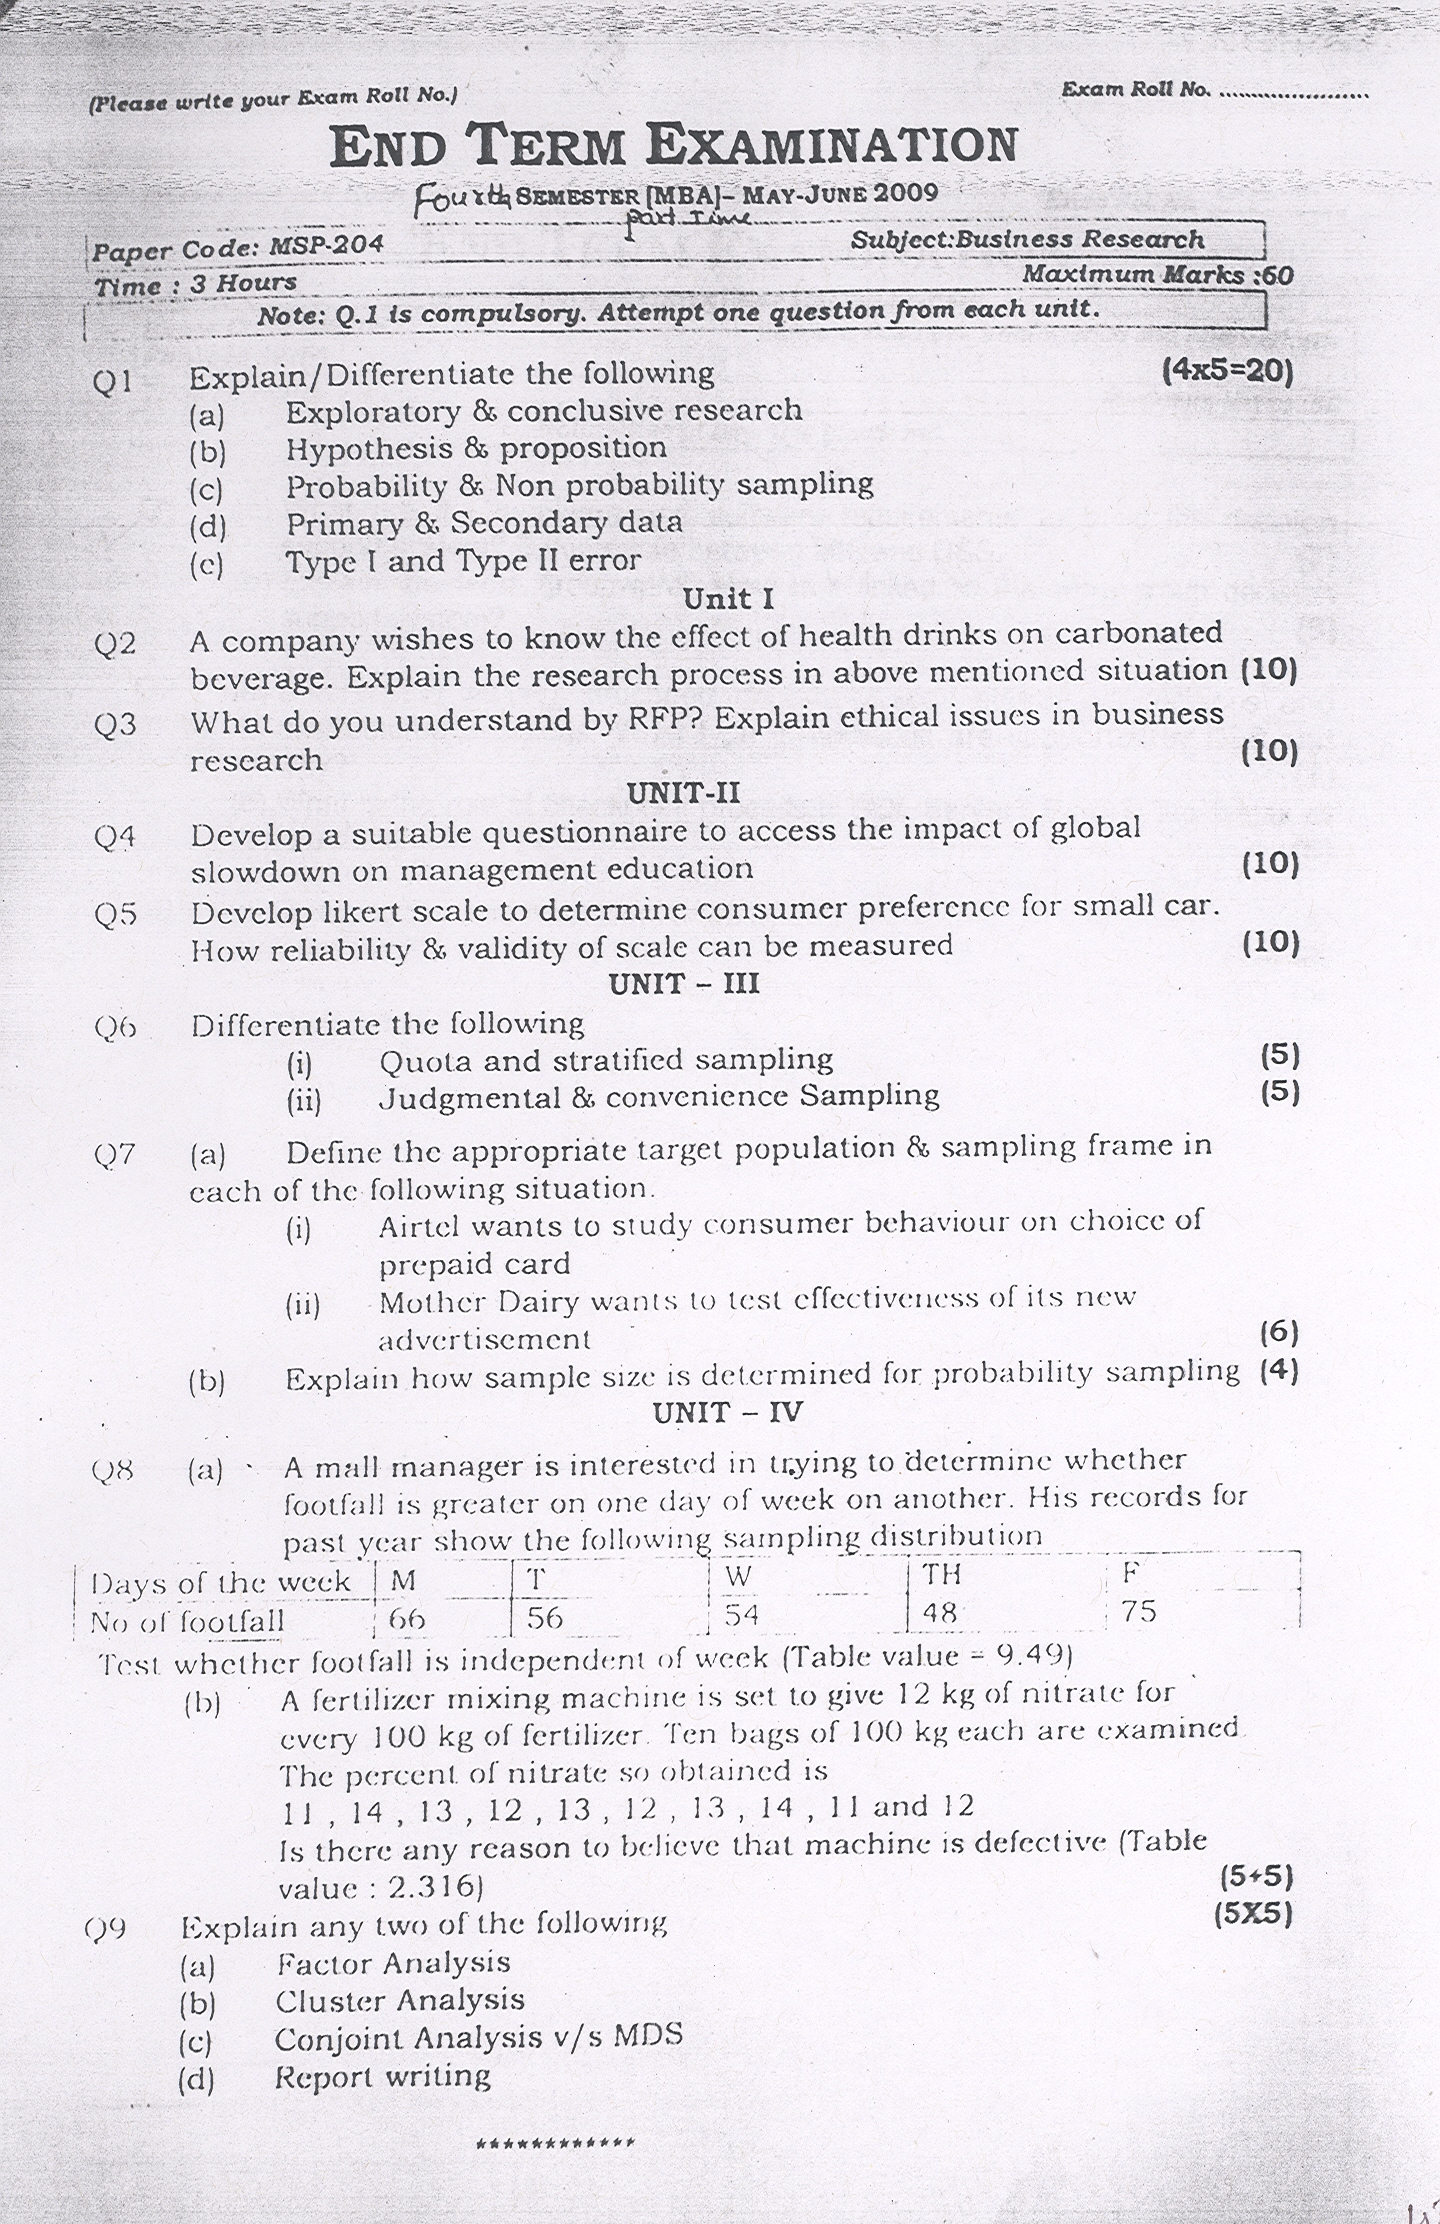 ggsipu end term papers Some of the recent question papers as follows sample question paper for the entrance test section i : general aptitude the coalition central government in power in india is a) upsc c) upa b) congress d) nda canine is a term referred to the species of the ______ family a) cow c) cat b) monkey d) dog.